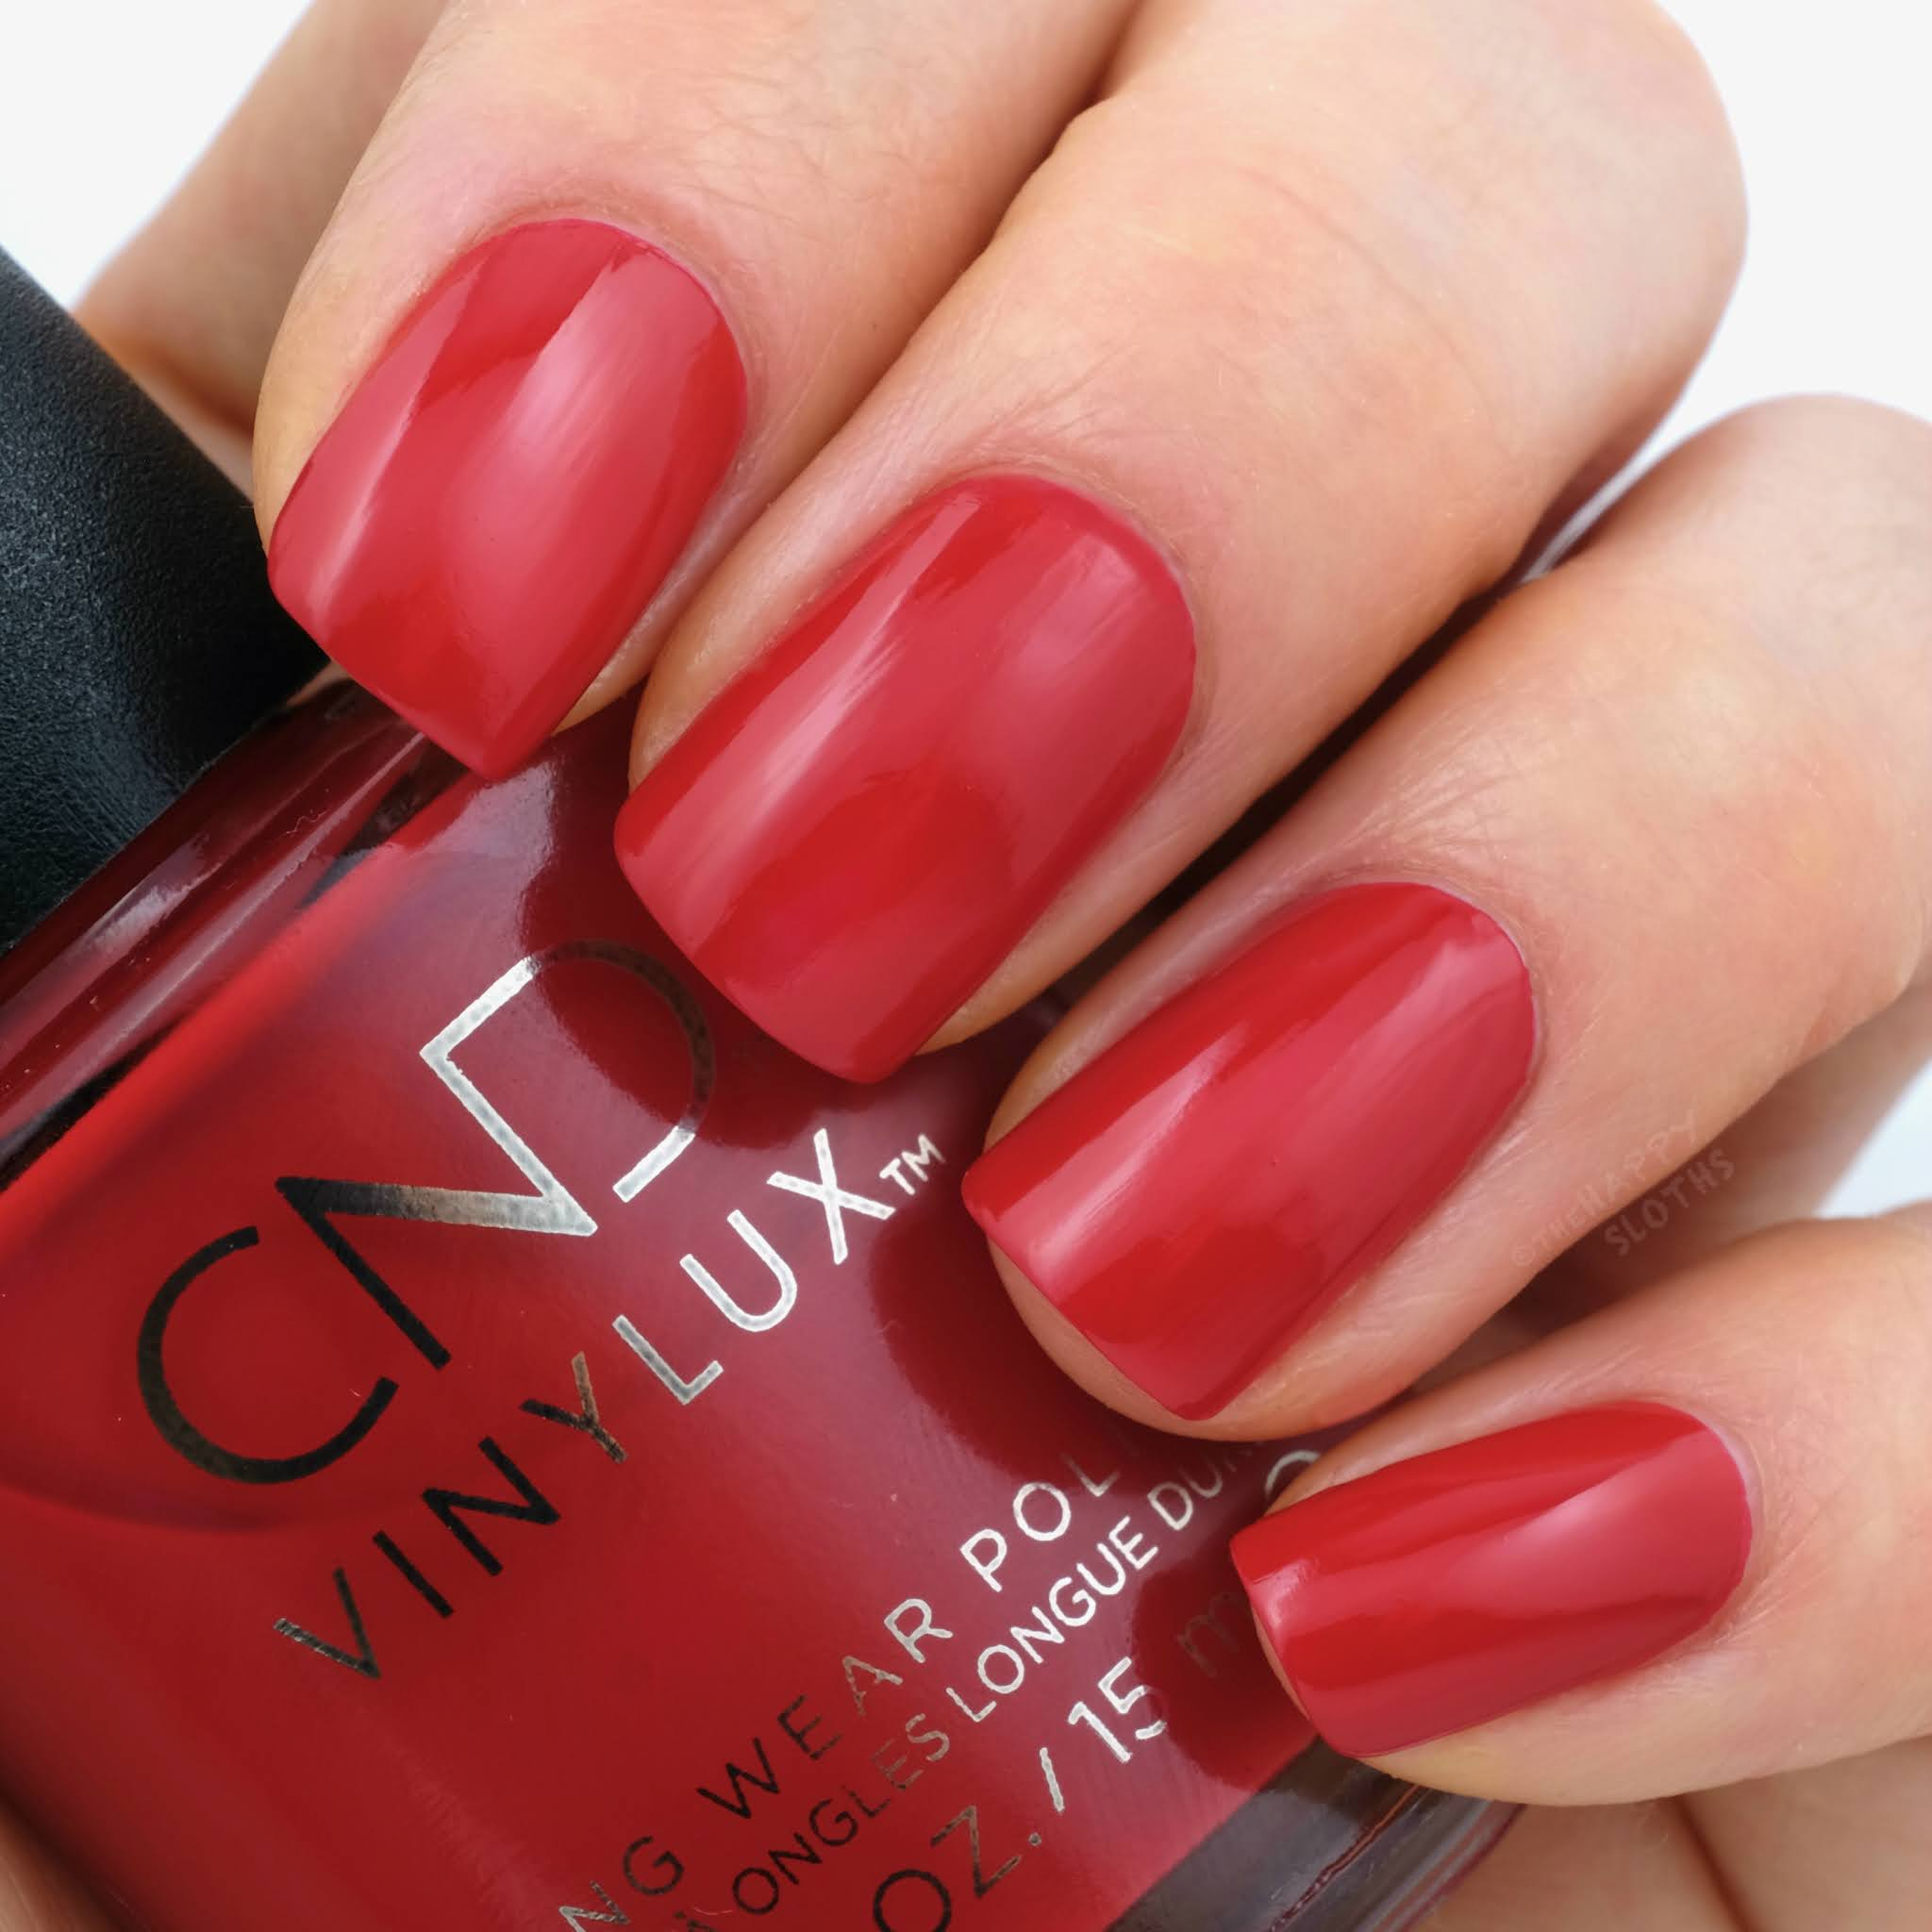 CND | Holiday 2020 Cocktail Couture Collection | Devil Red: Review and Swatches